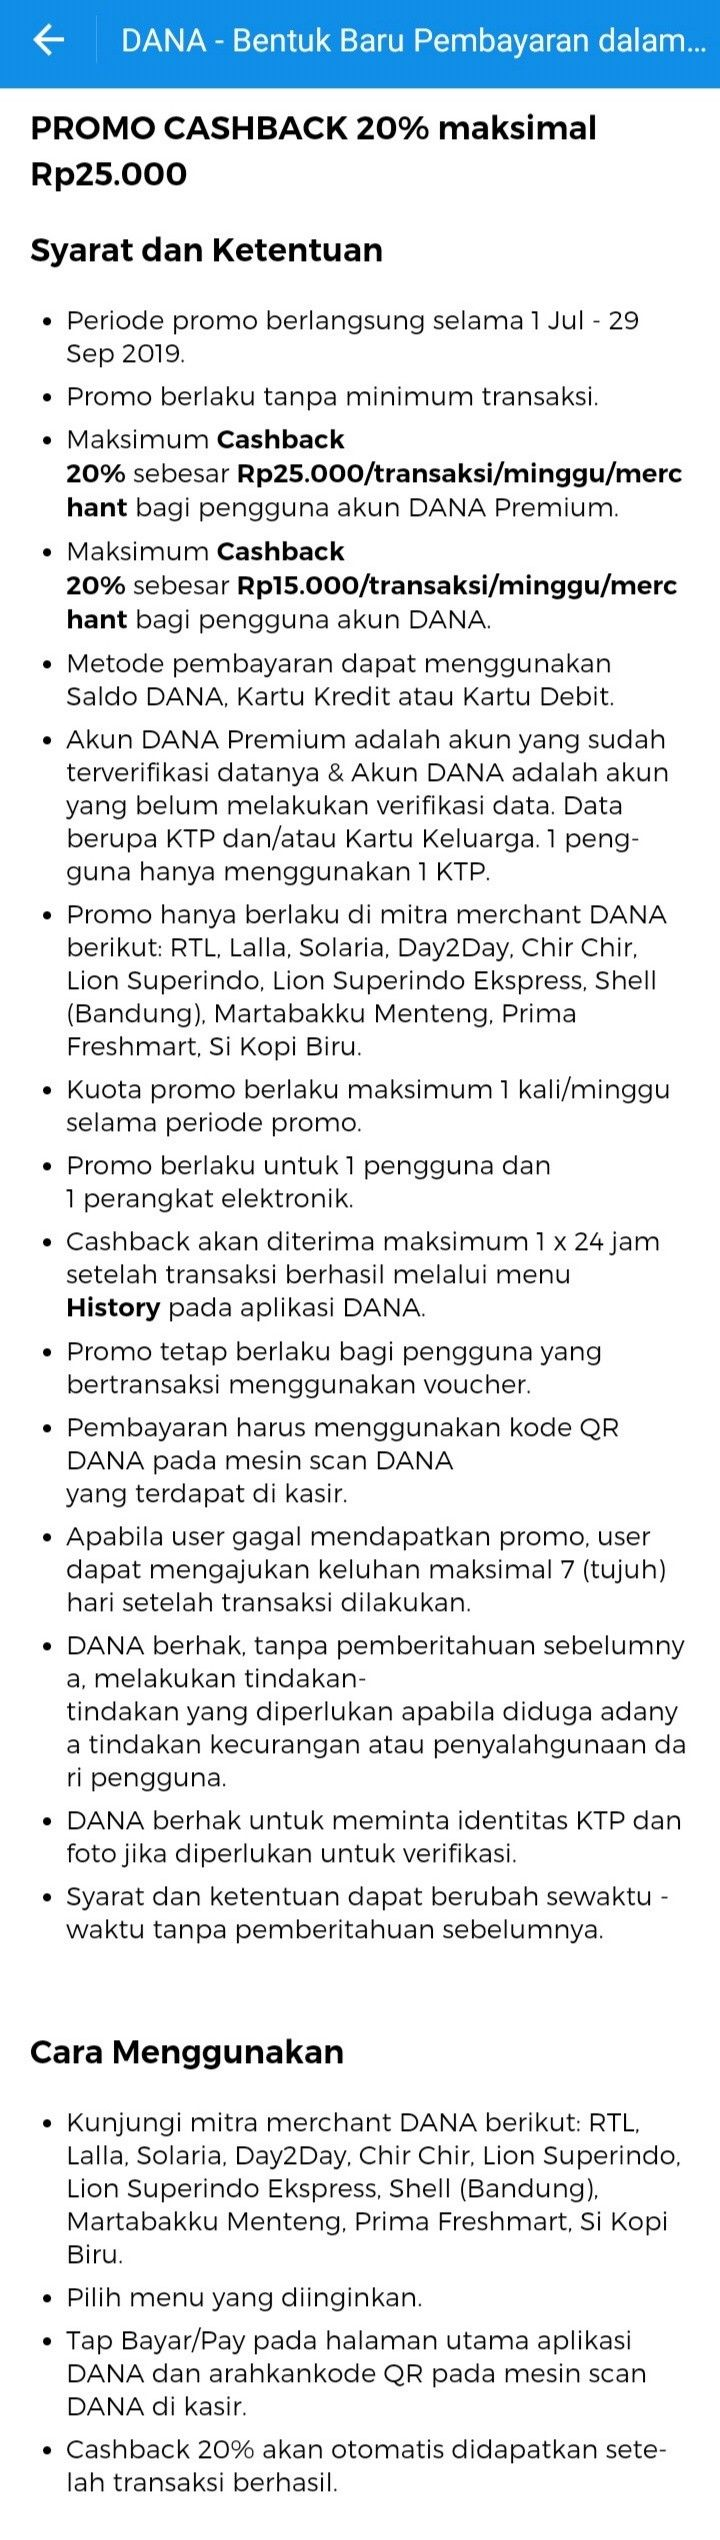 Pin Di Online Payment